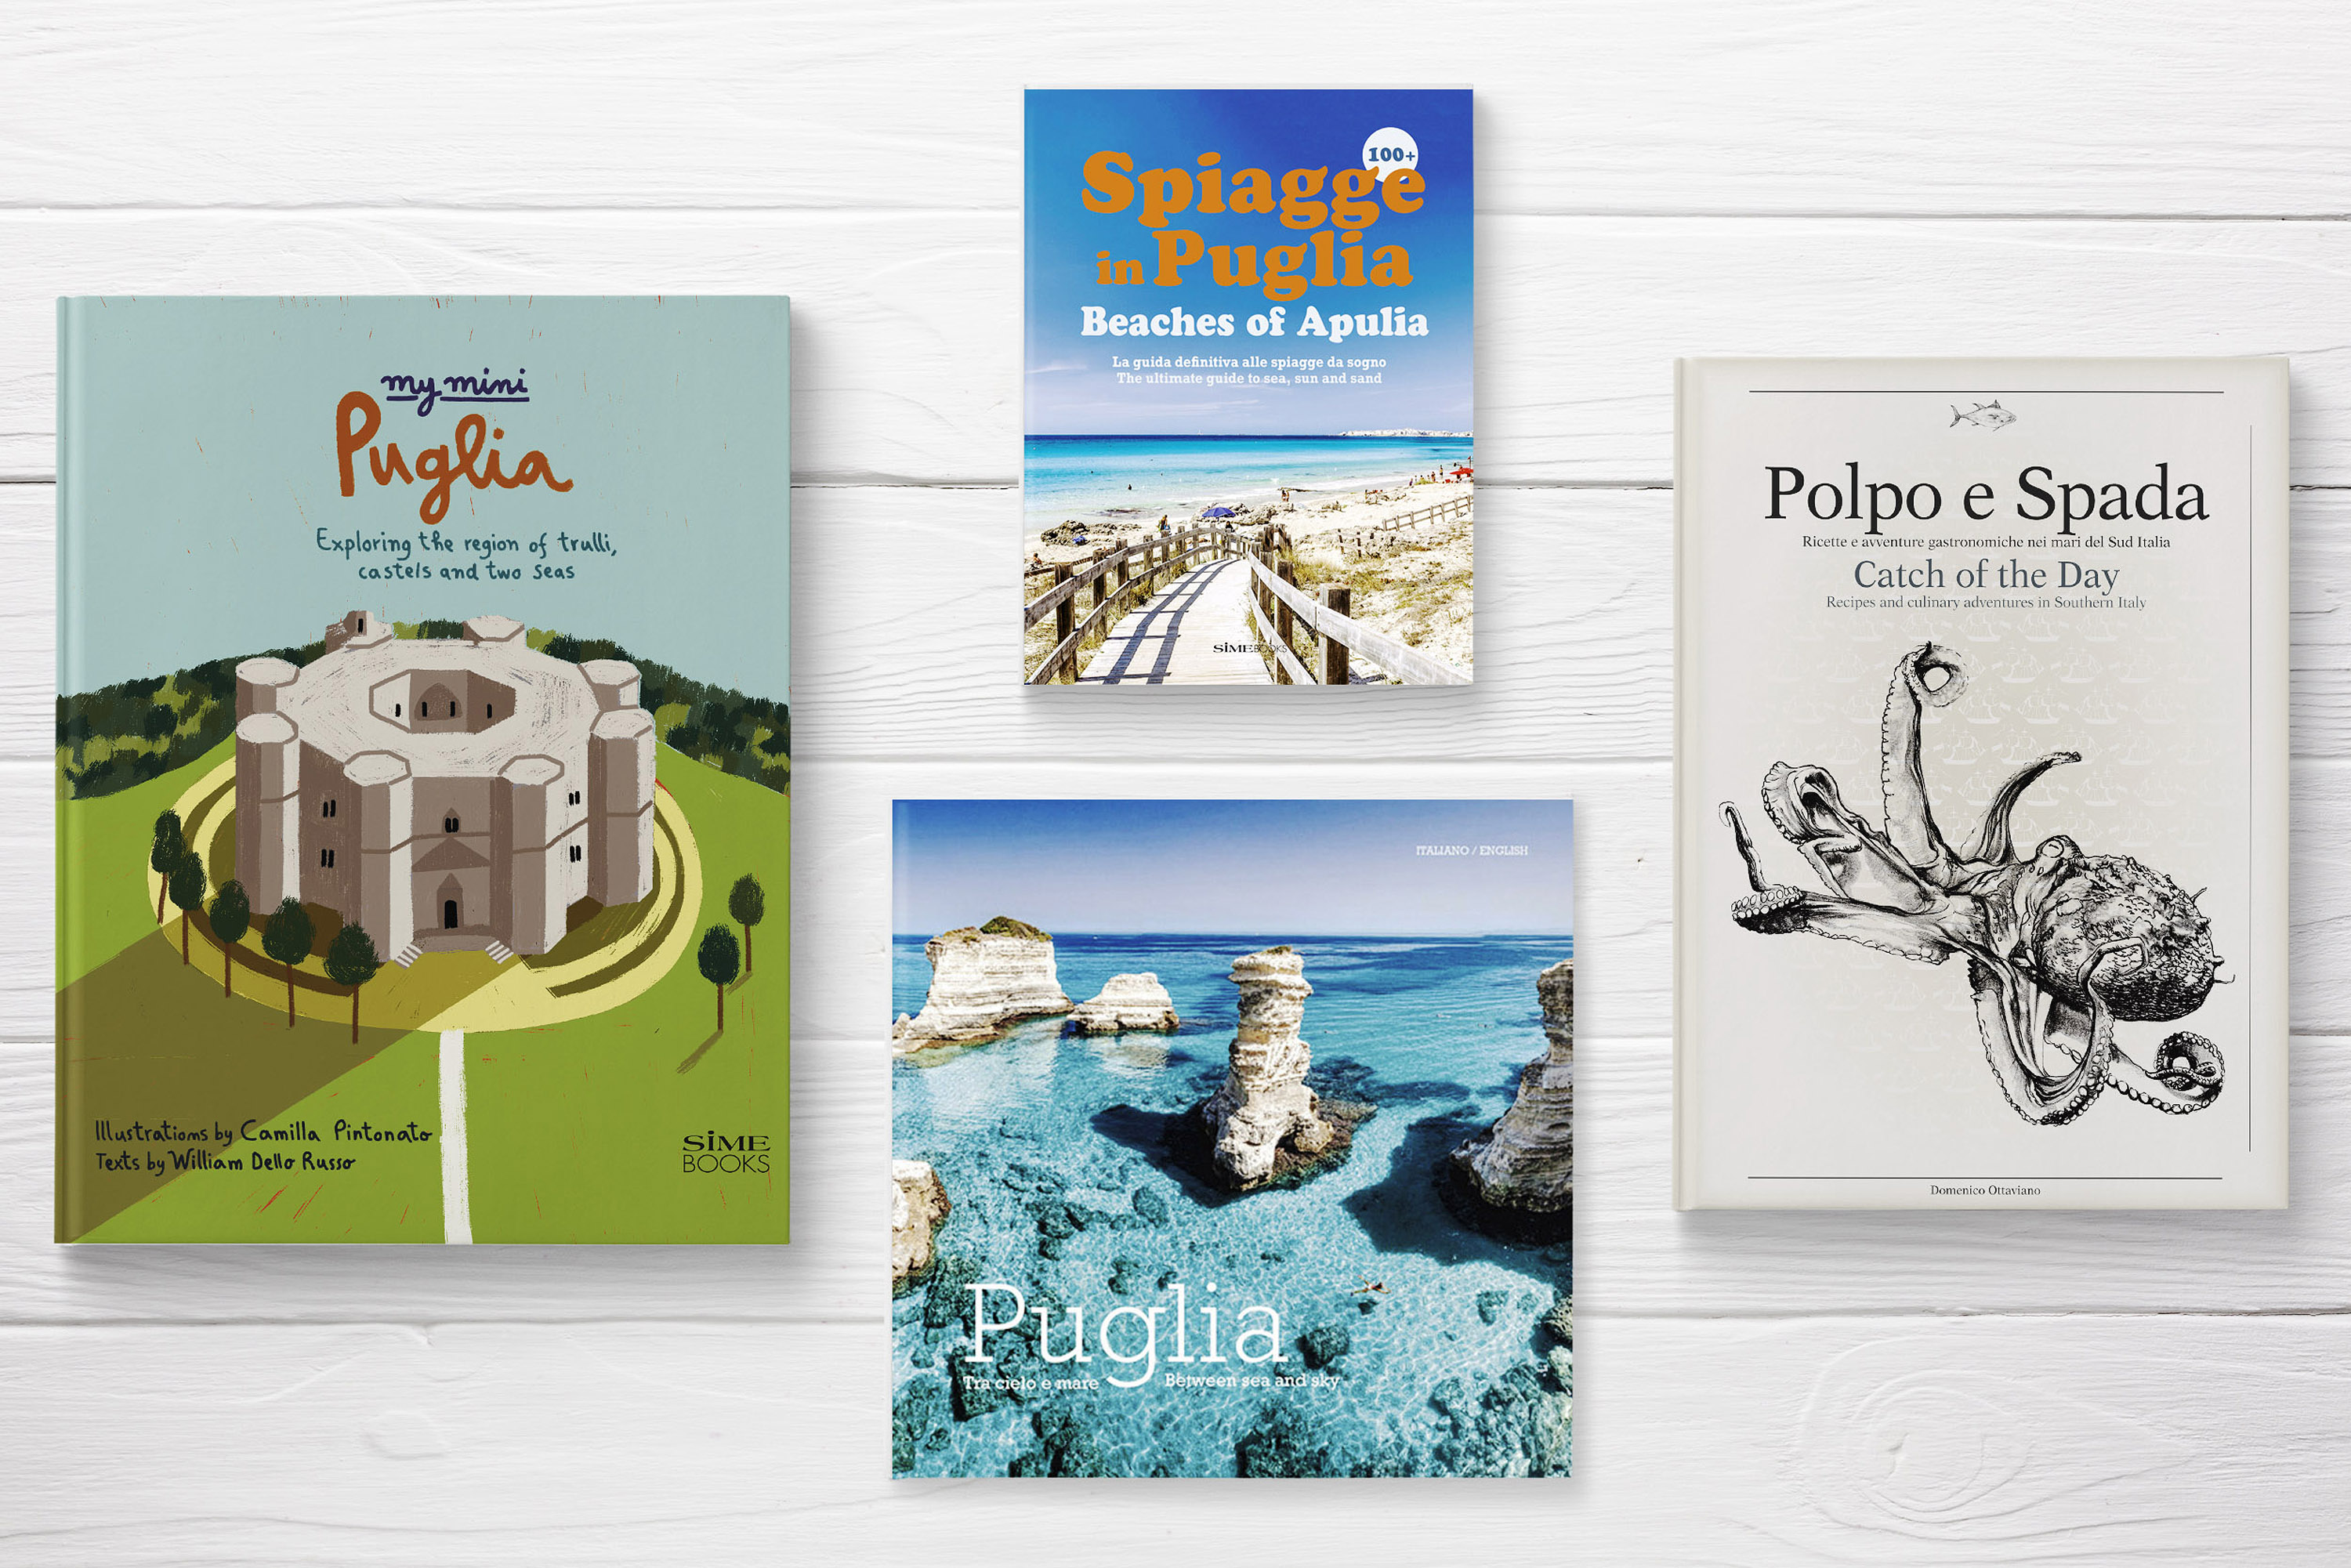 PROMOZIONE ITALY > Apulia Learn about regions of Italy with SimeBooks